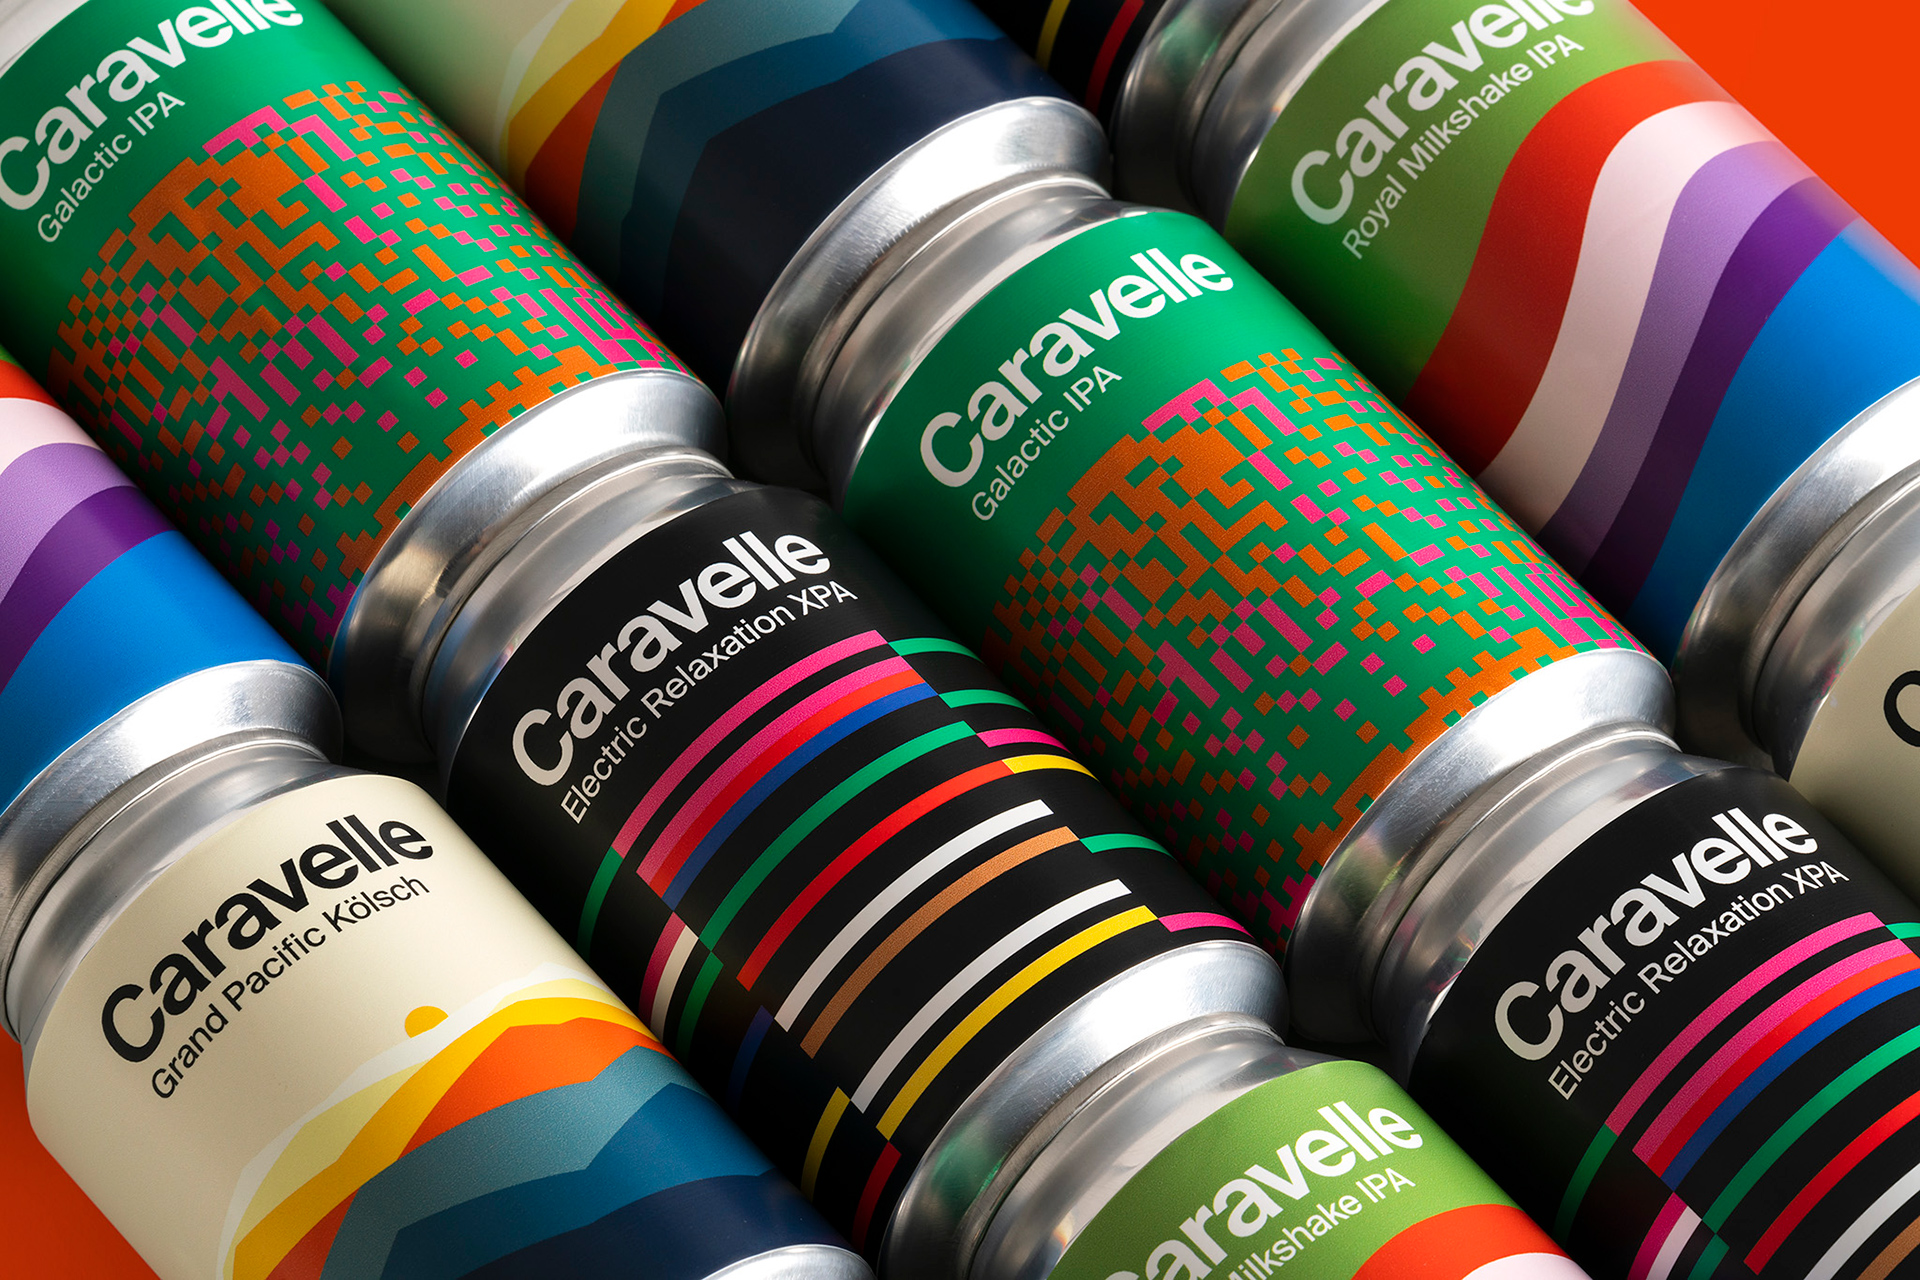 Branding for craft beer brand Caravelle